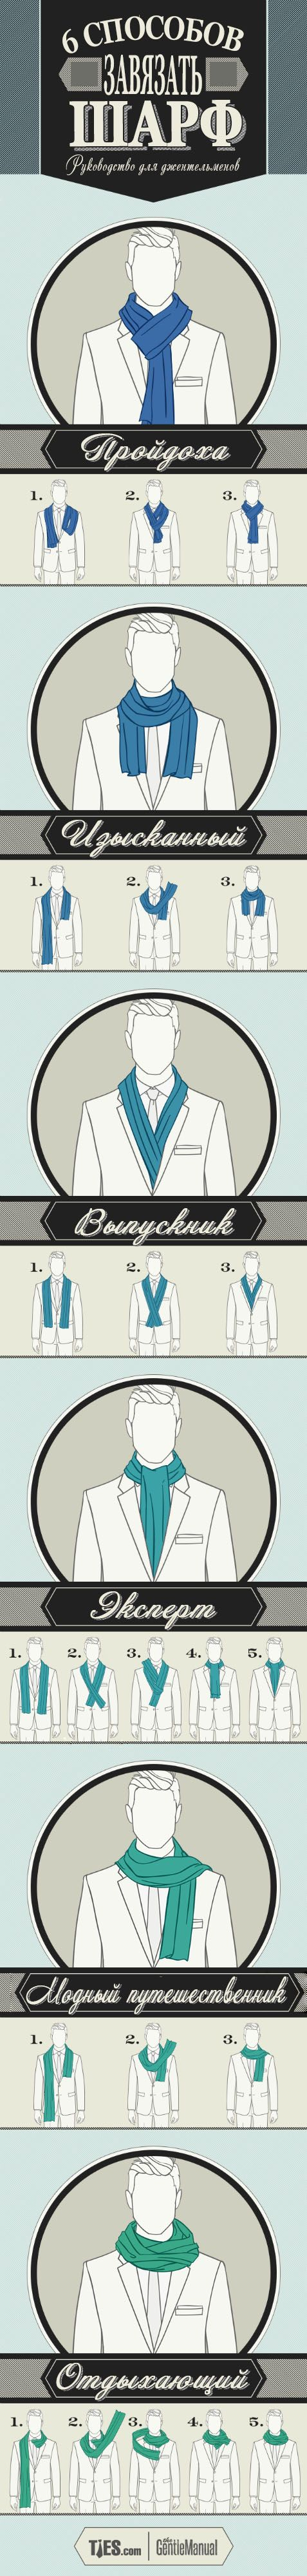 gentlemens guide to scarf tying